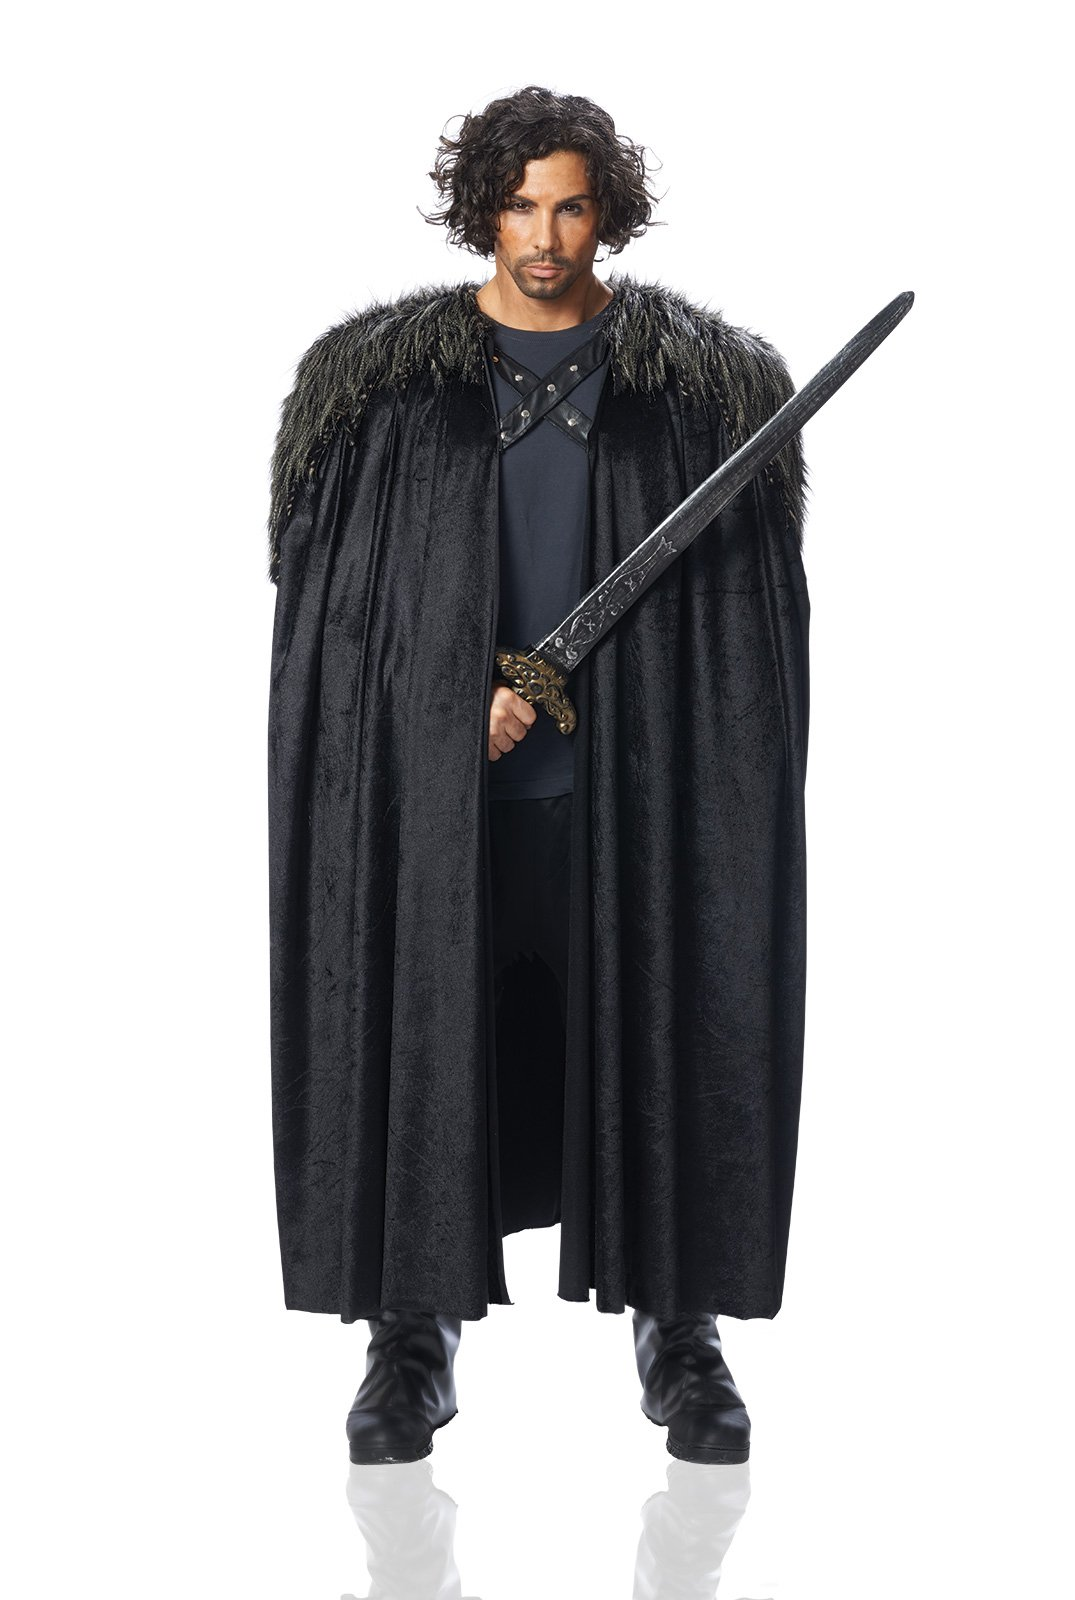 Costume-Culture-Mens-Big-Medieval-Cape-Adult-Deluxe